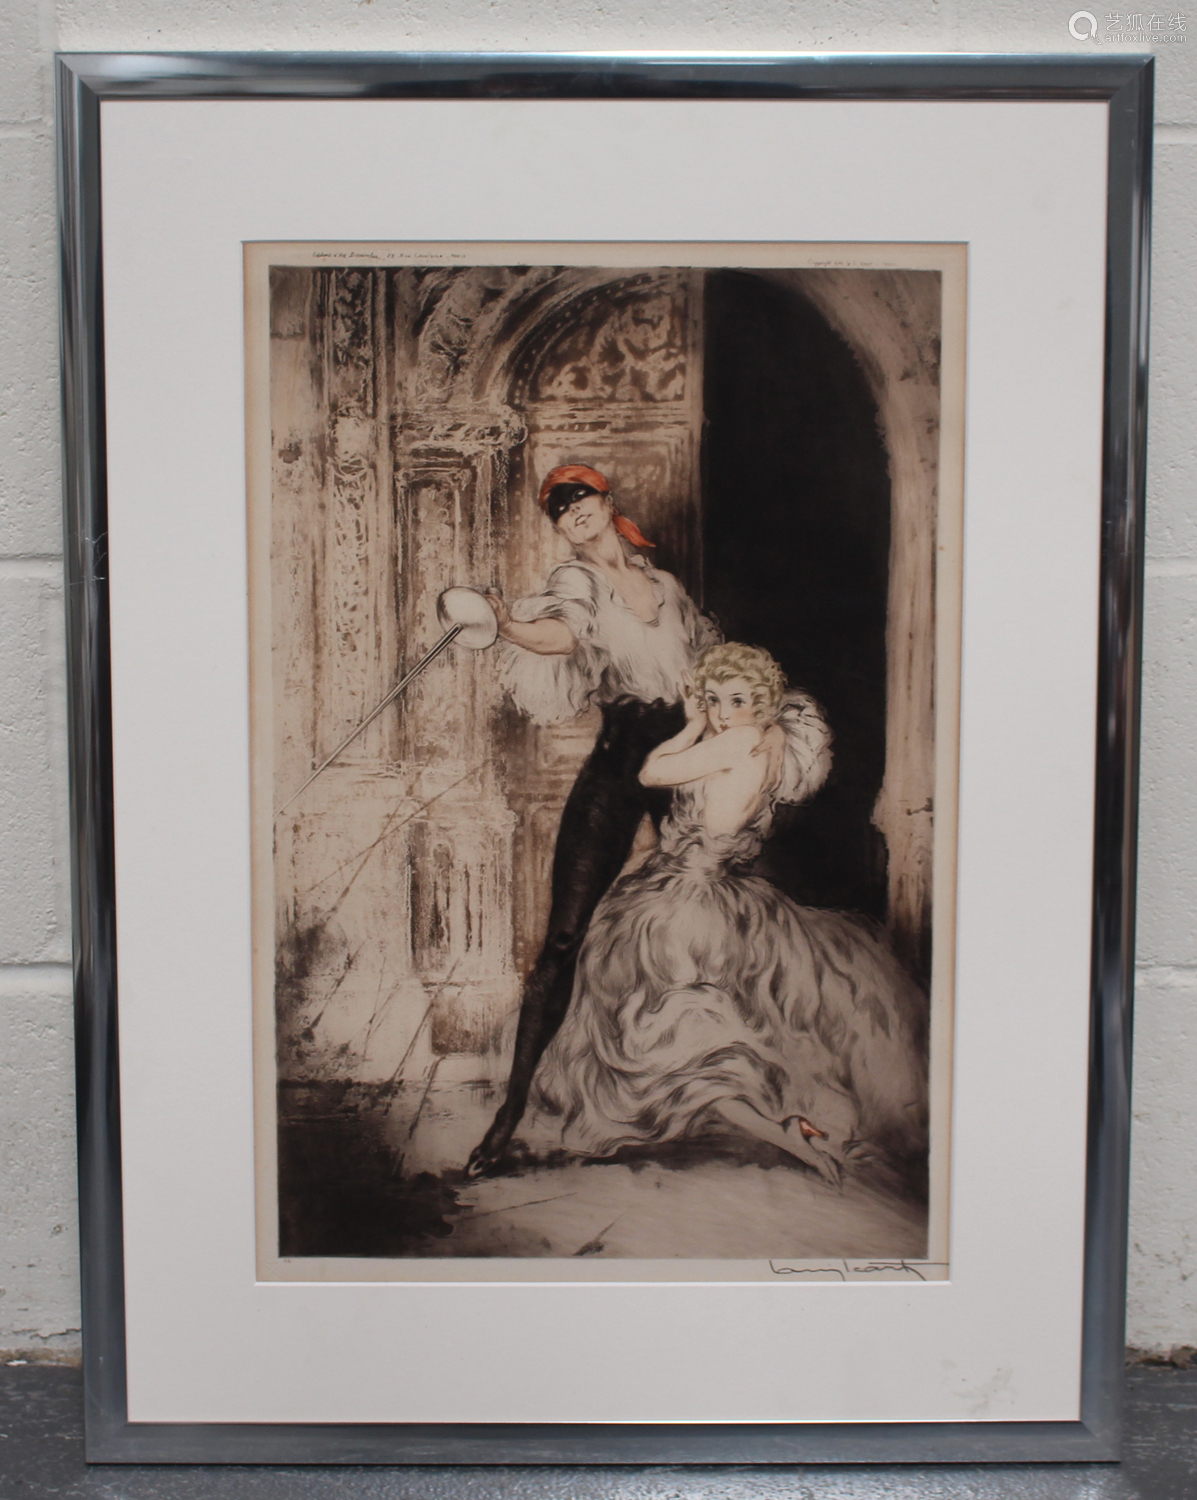 Louis Icart - Don Juan, etching with drypoint and aquatint, published by Icart circa 1928, signed